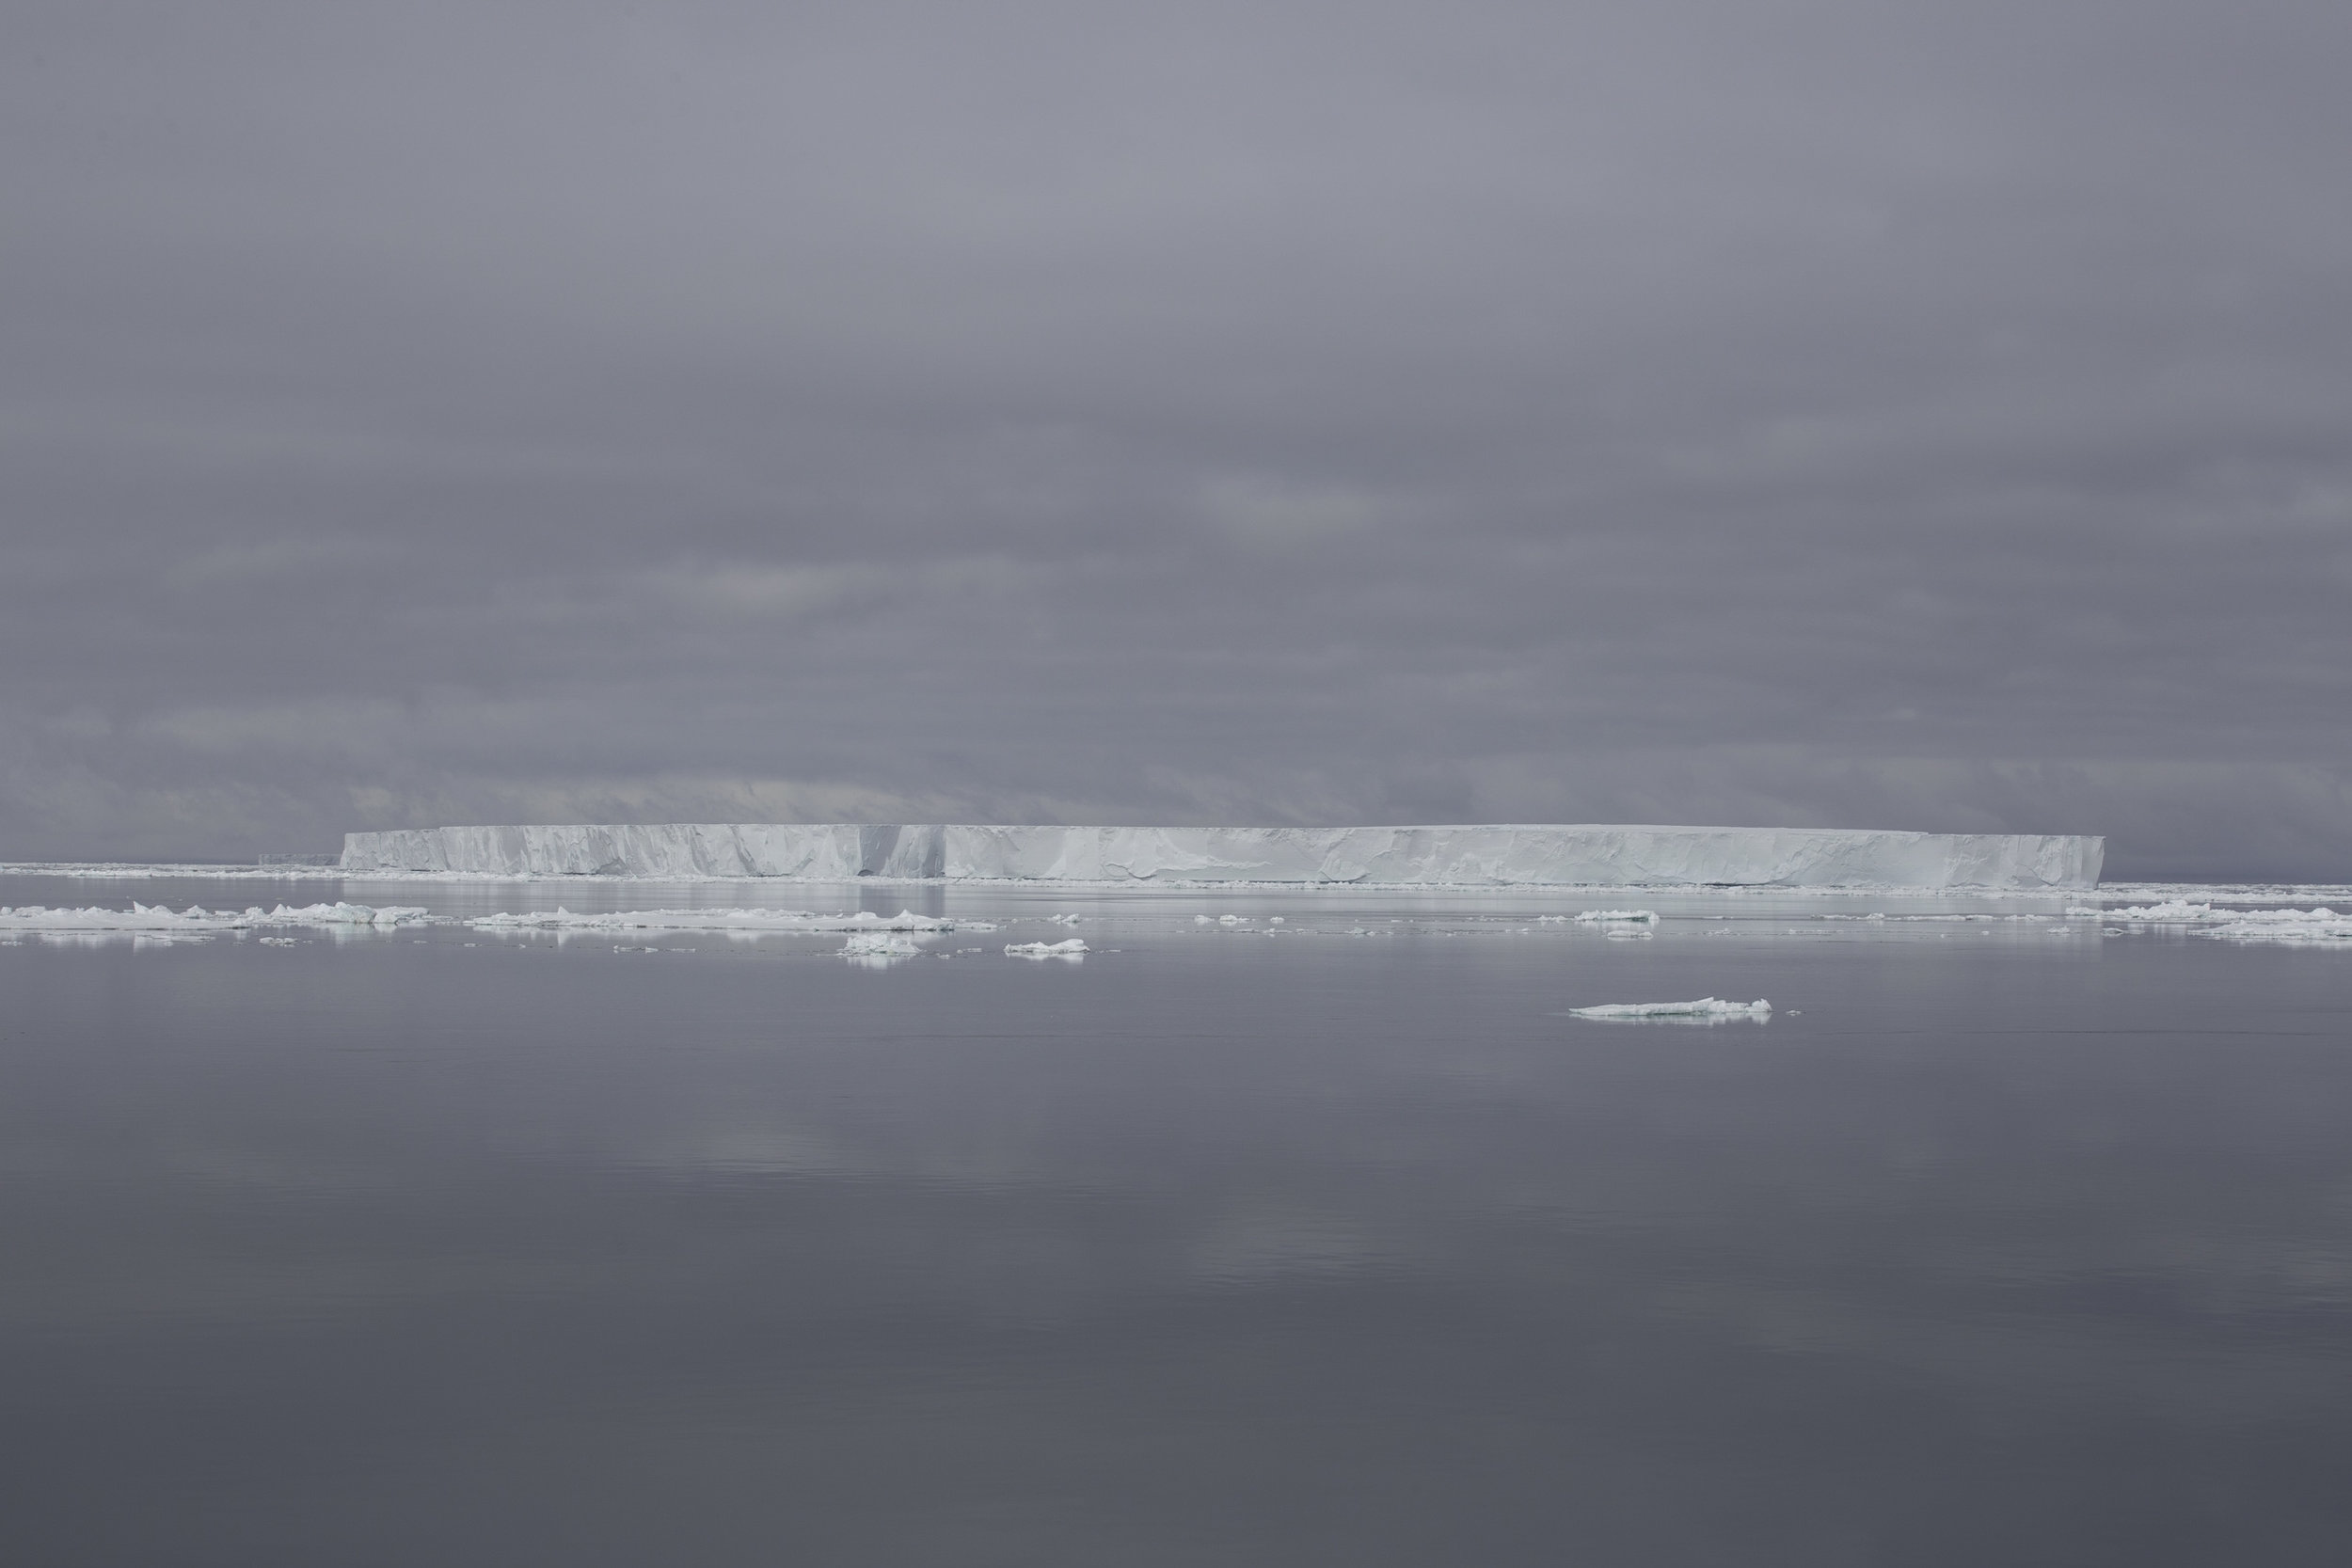 The Weddel Sea on a surreal calm day with tabular ice bergs 100+ meters high and kilometres floating all around.